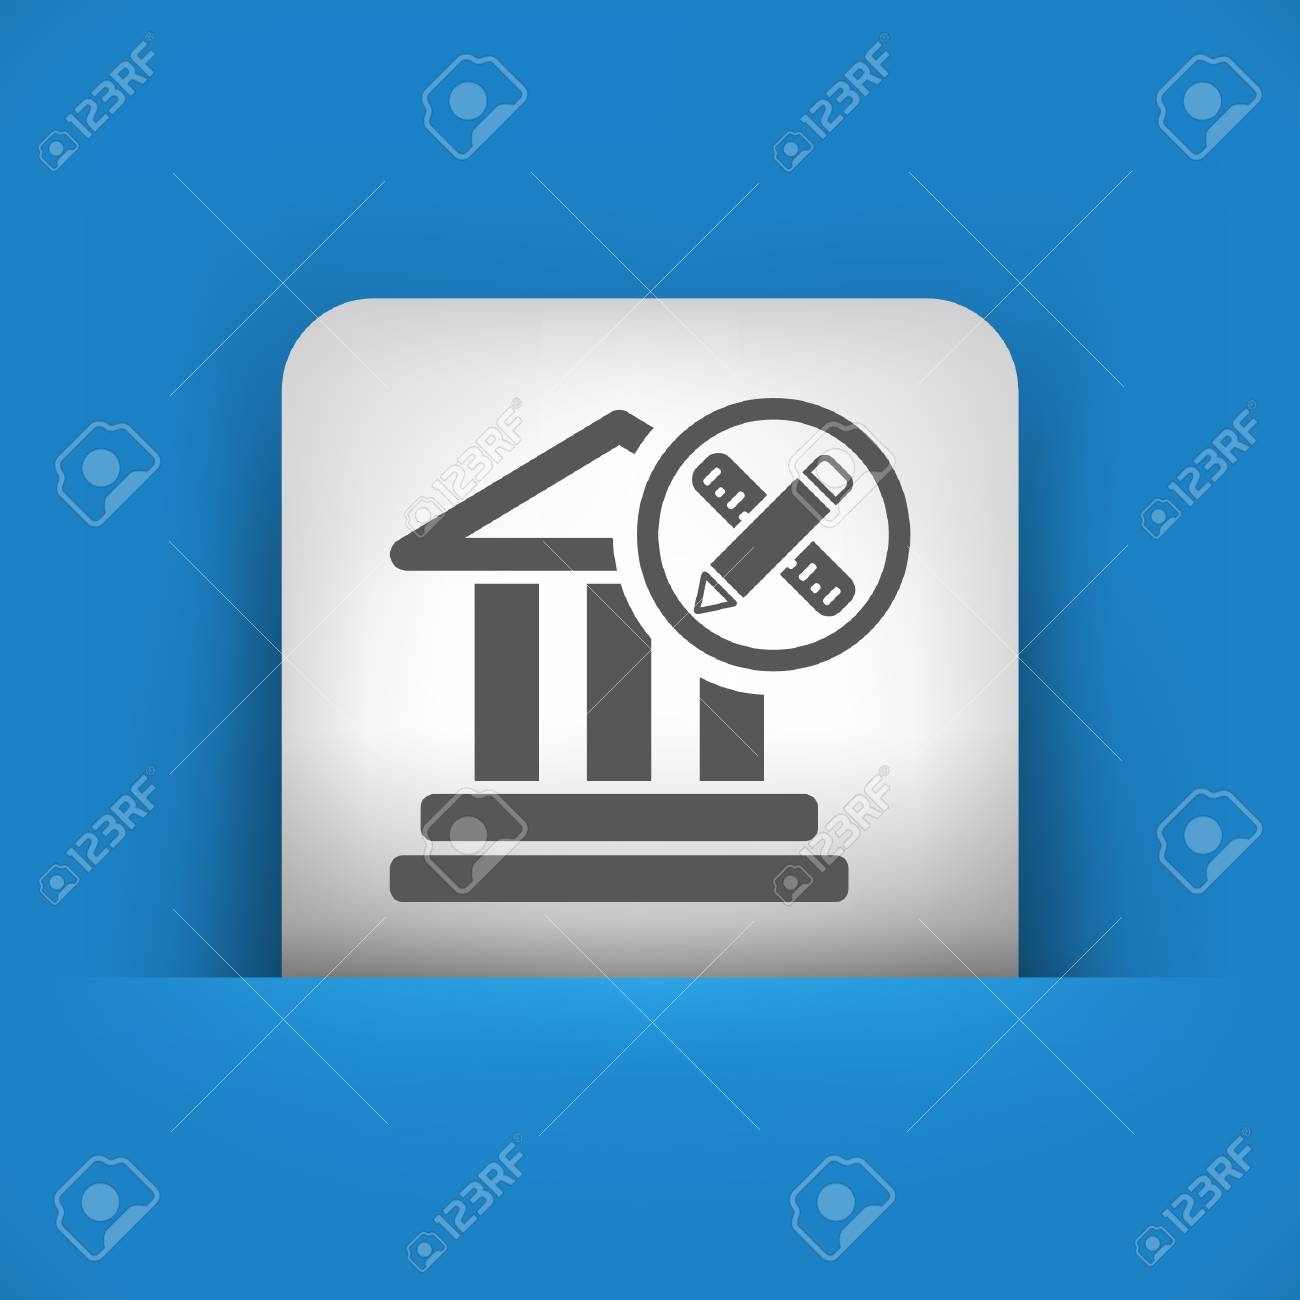 Vector illustration of single blue and gray isolated icon. Stock Vector - 17783354